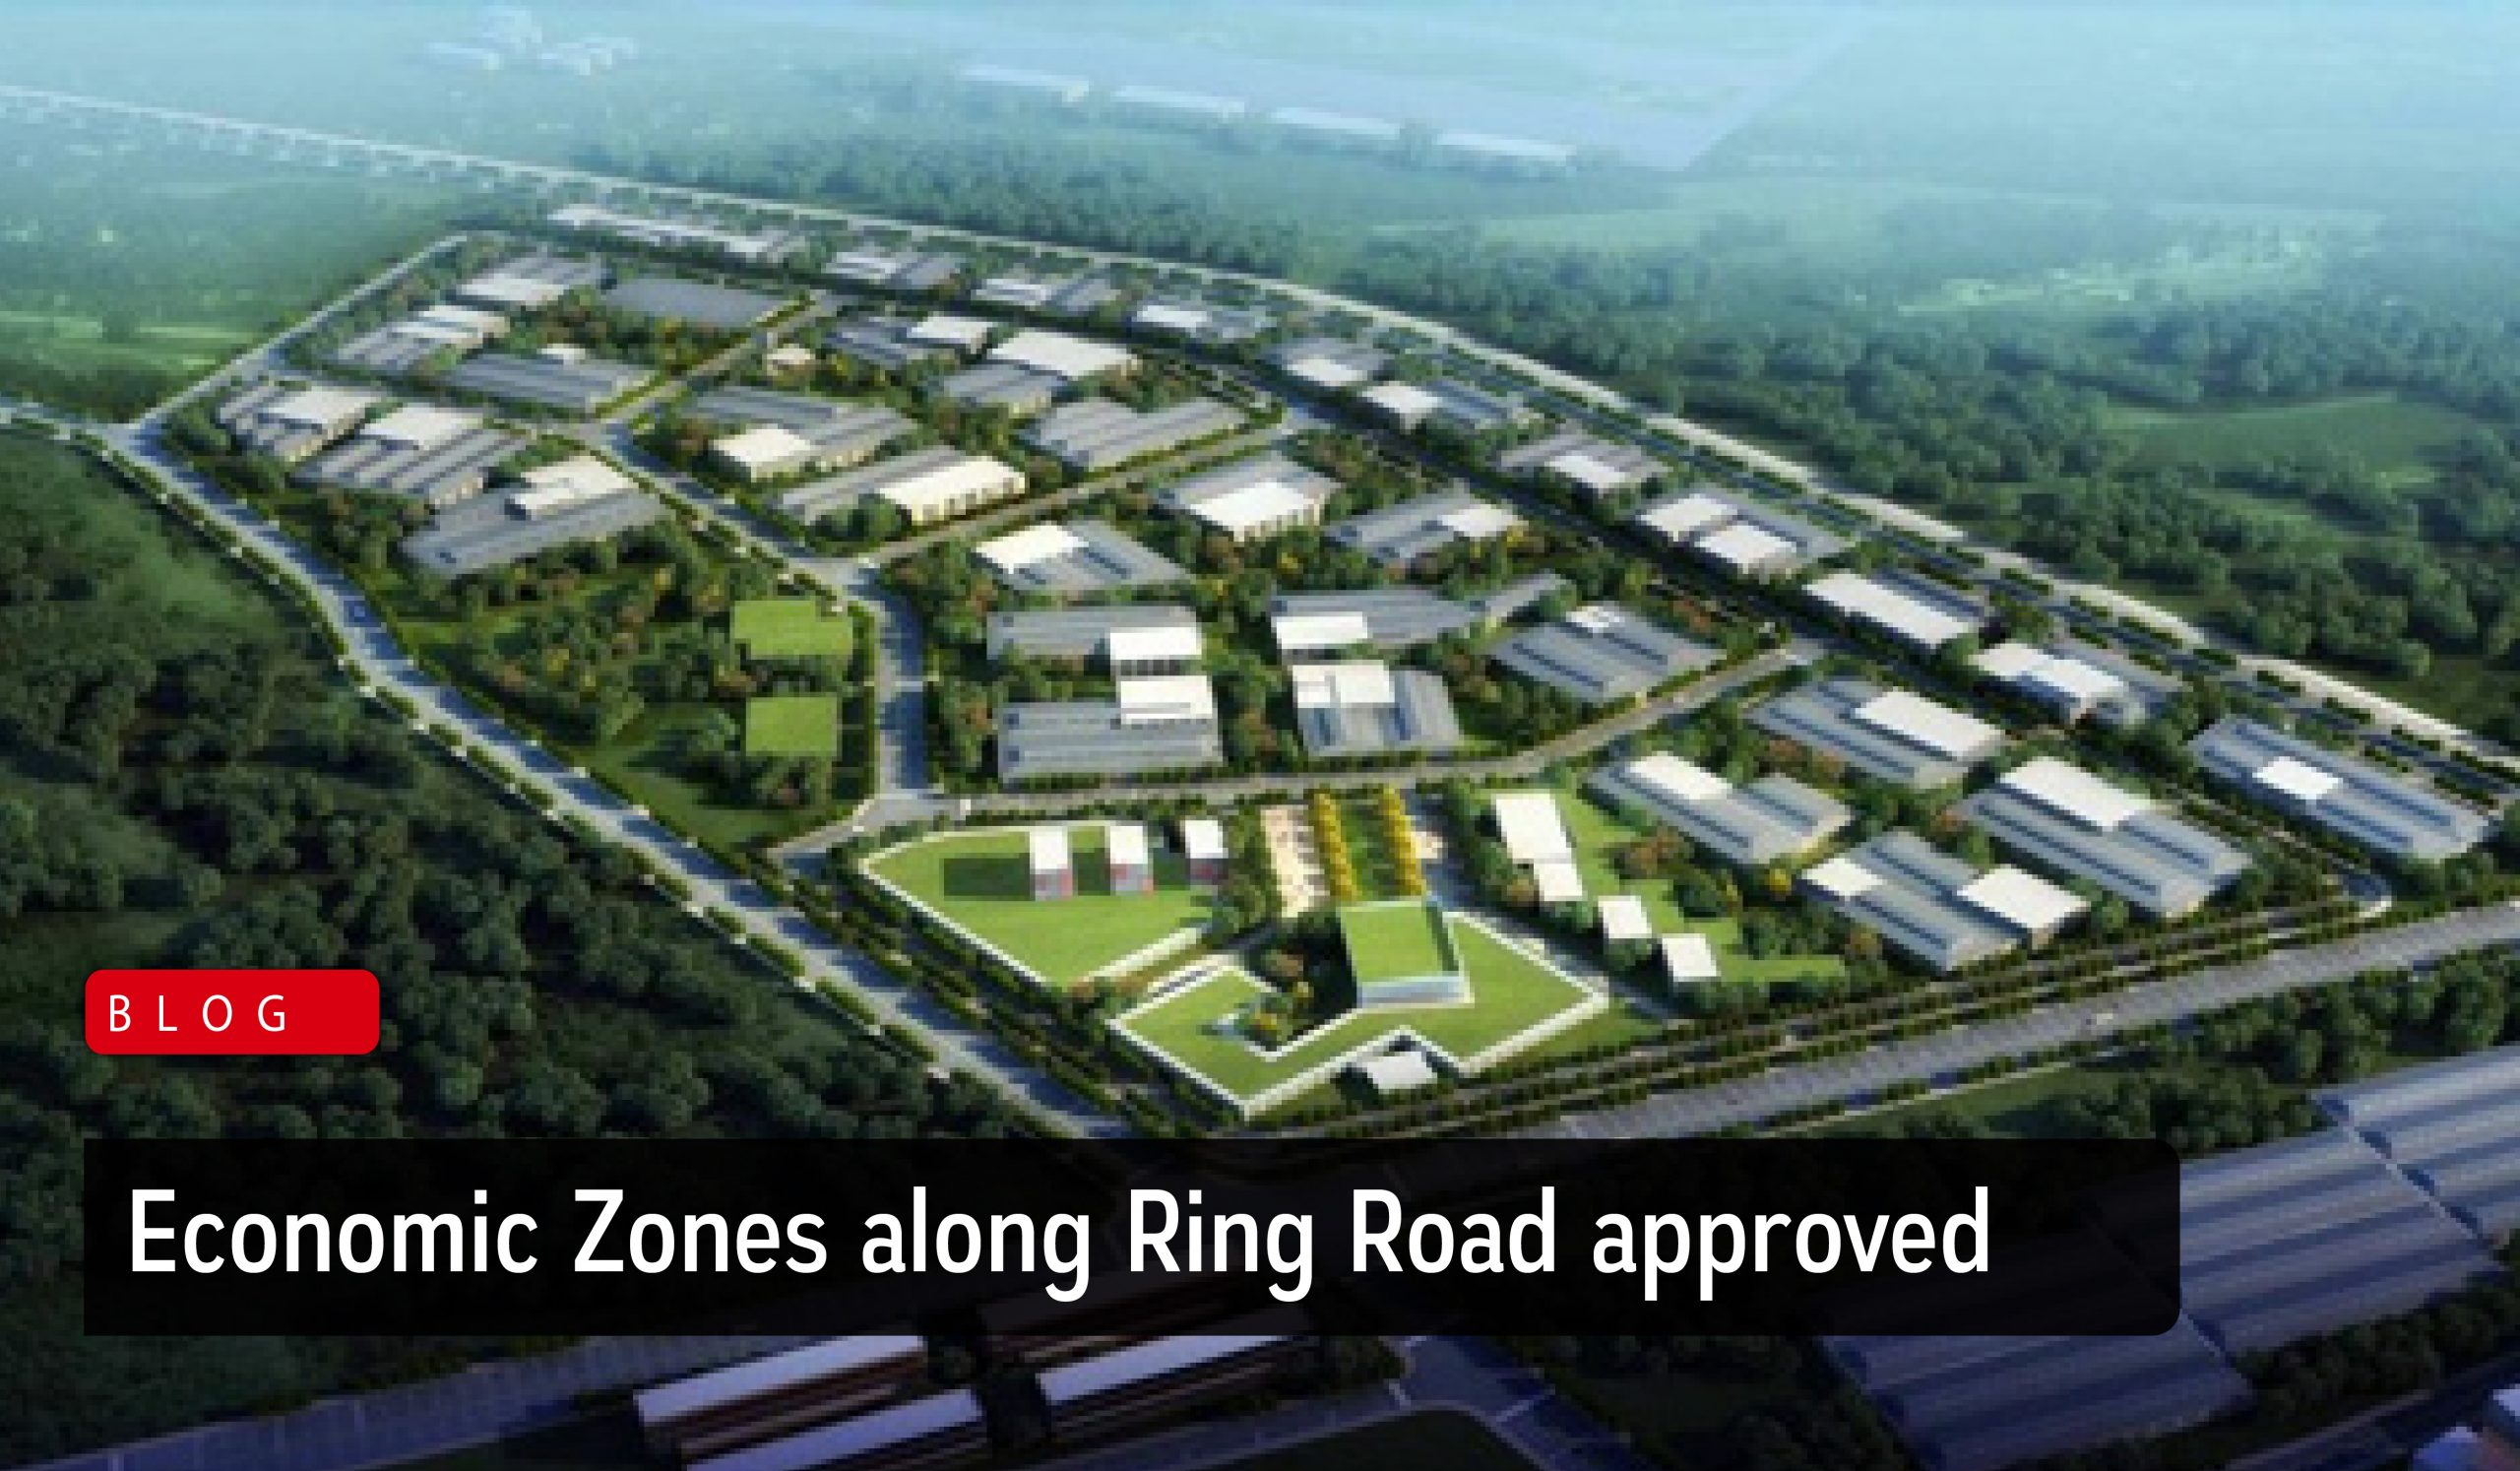 Economic Zones along Ring Road approved - Zarkon Group News Blog - FAH33M